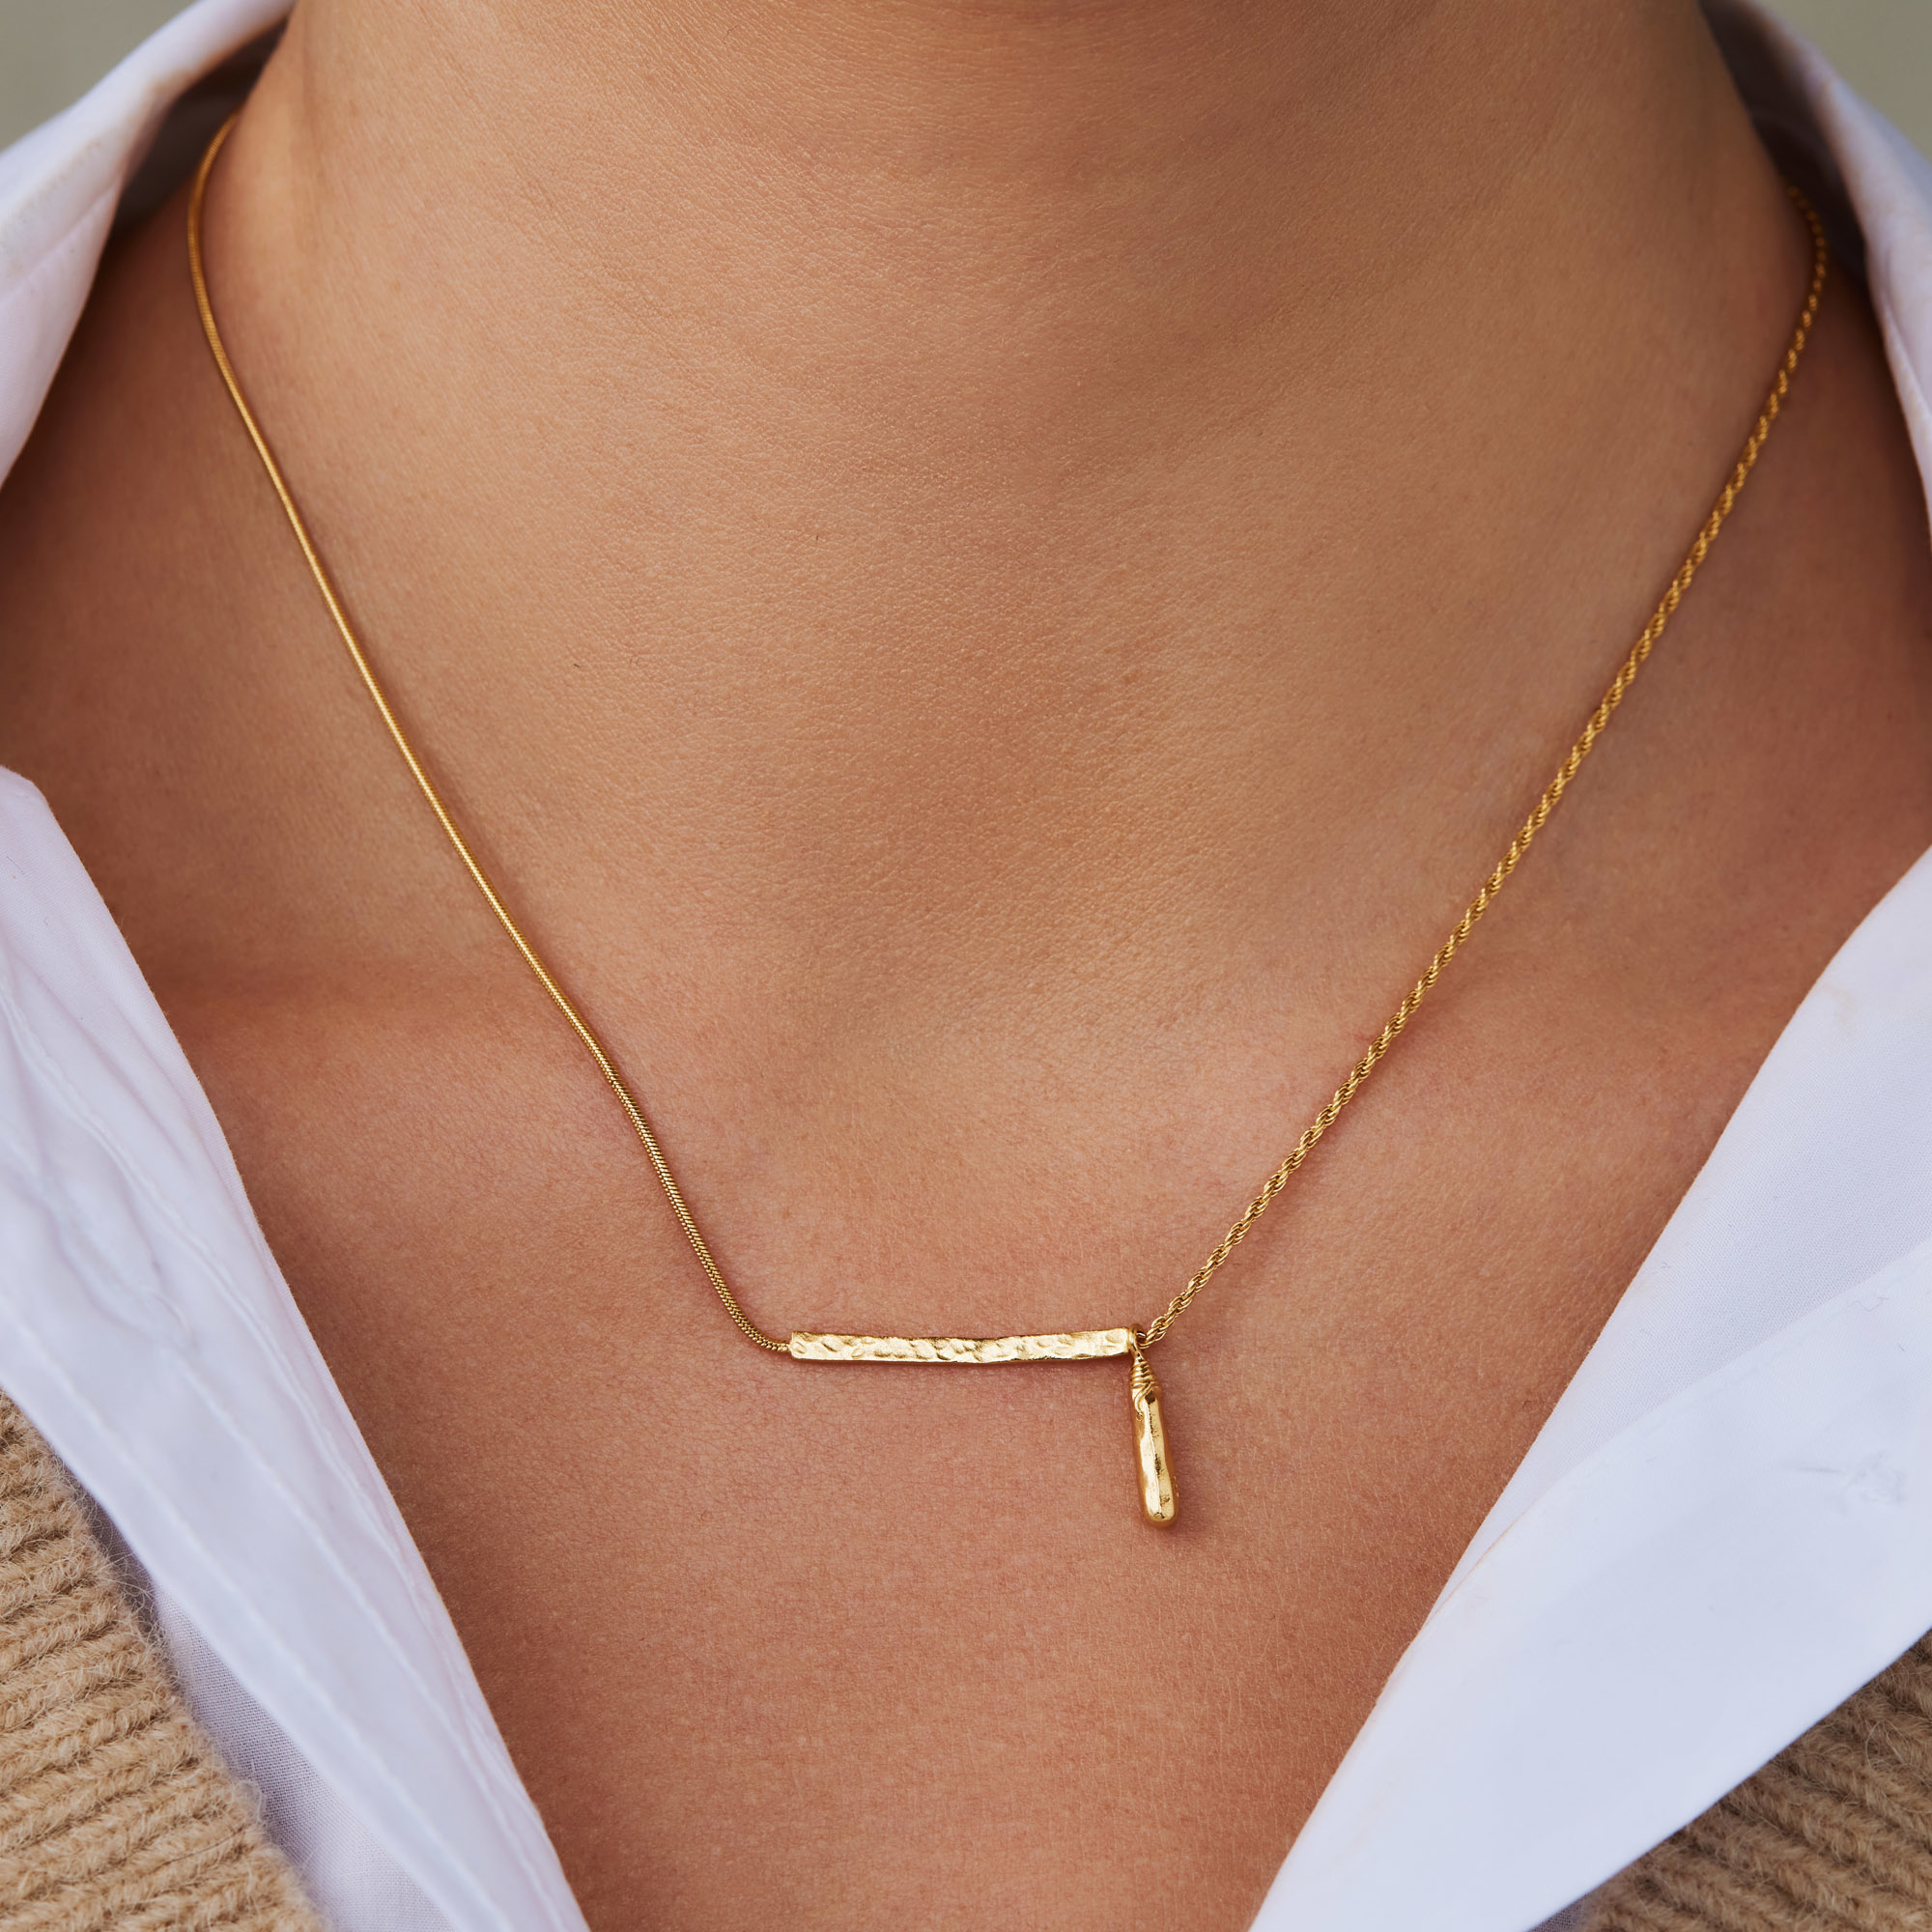 Violet Hamden Sisterhood Phoebe 925 sterling silver gold colored necklace with rods